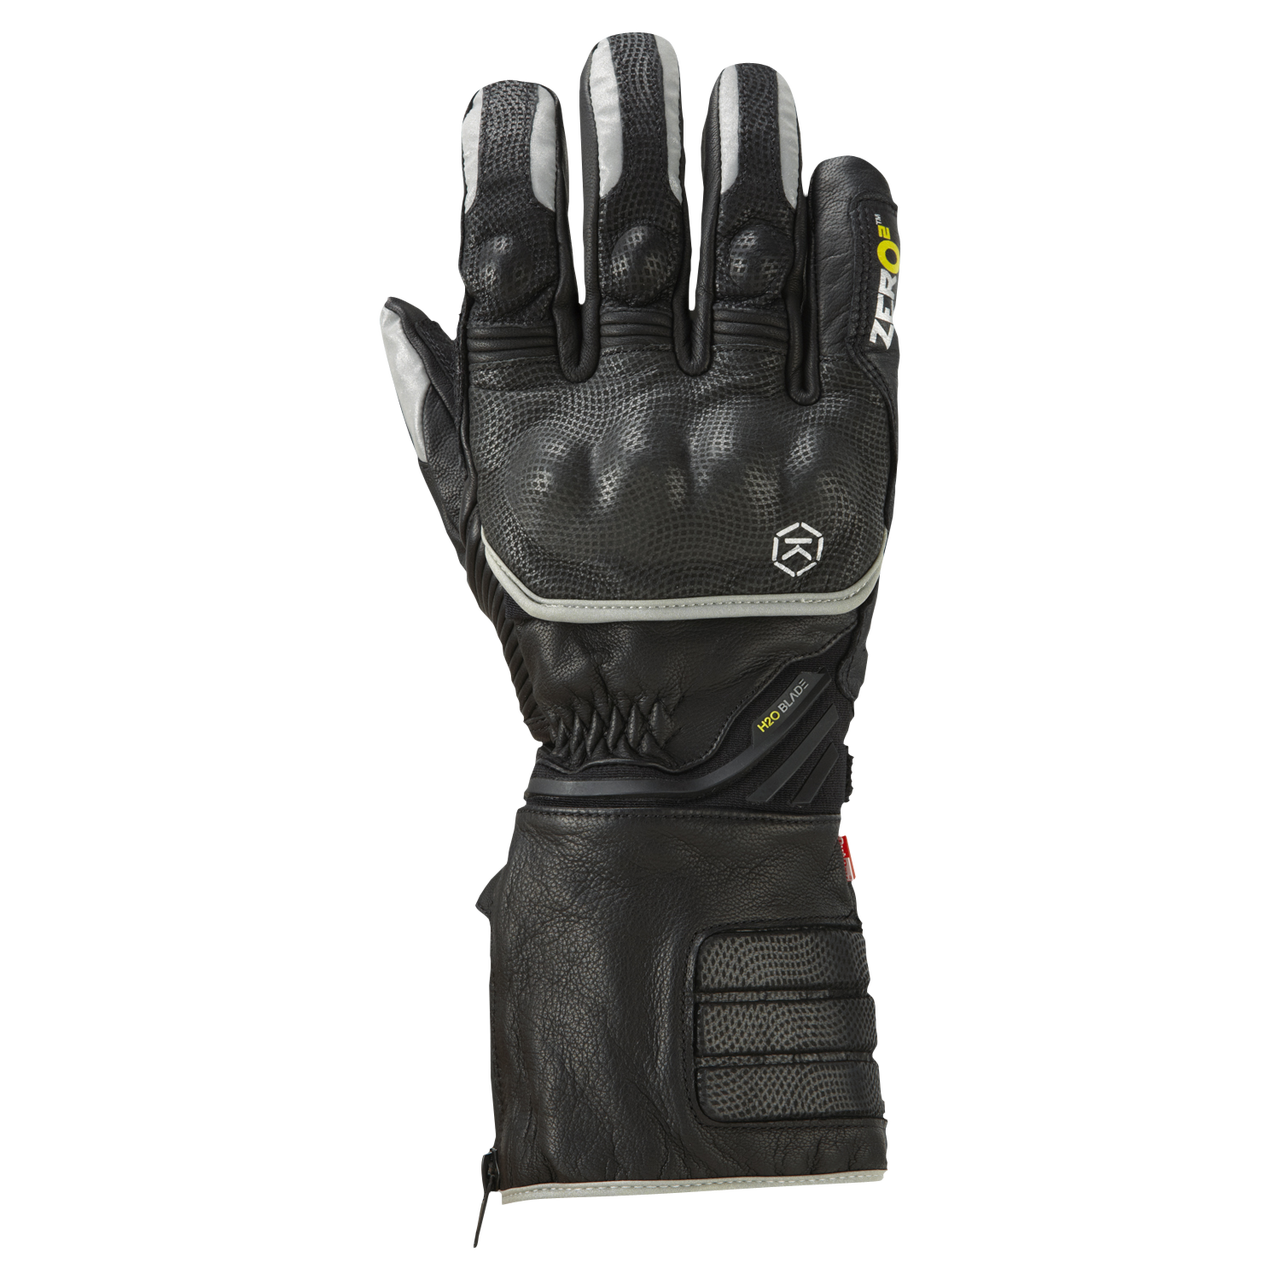 KNOX Zero 2 Hand Armour Gloves Small - Sportbike Track Gear e6d6561238c6